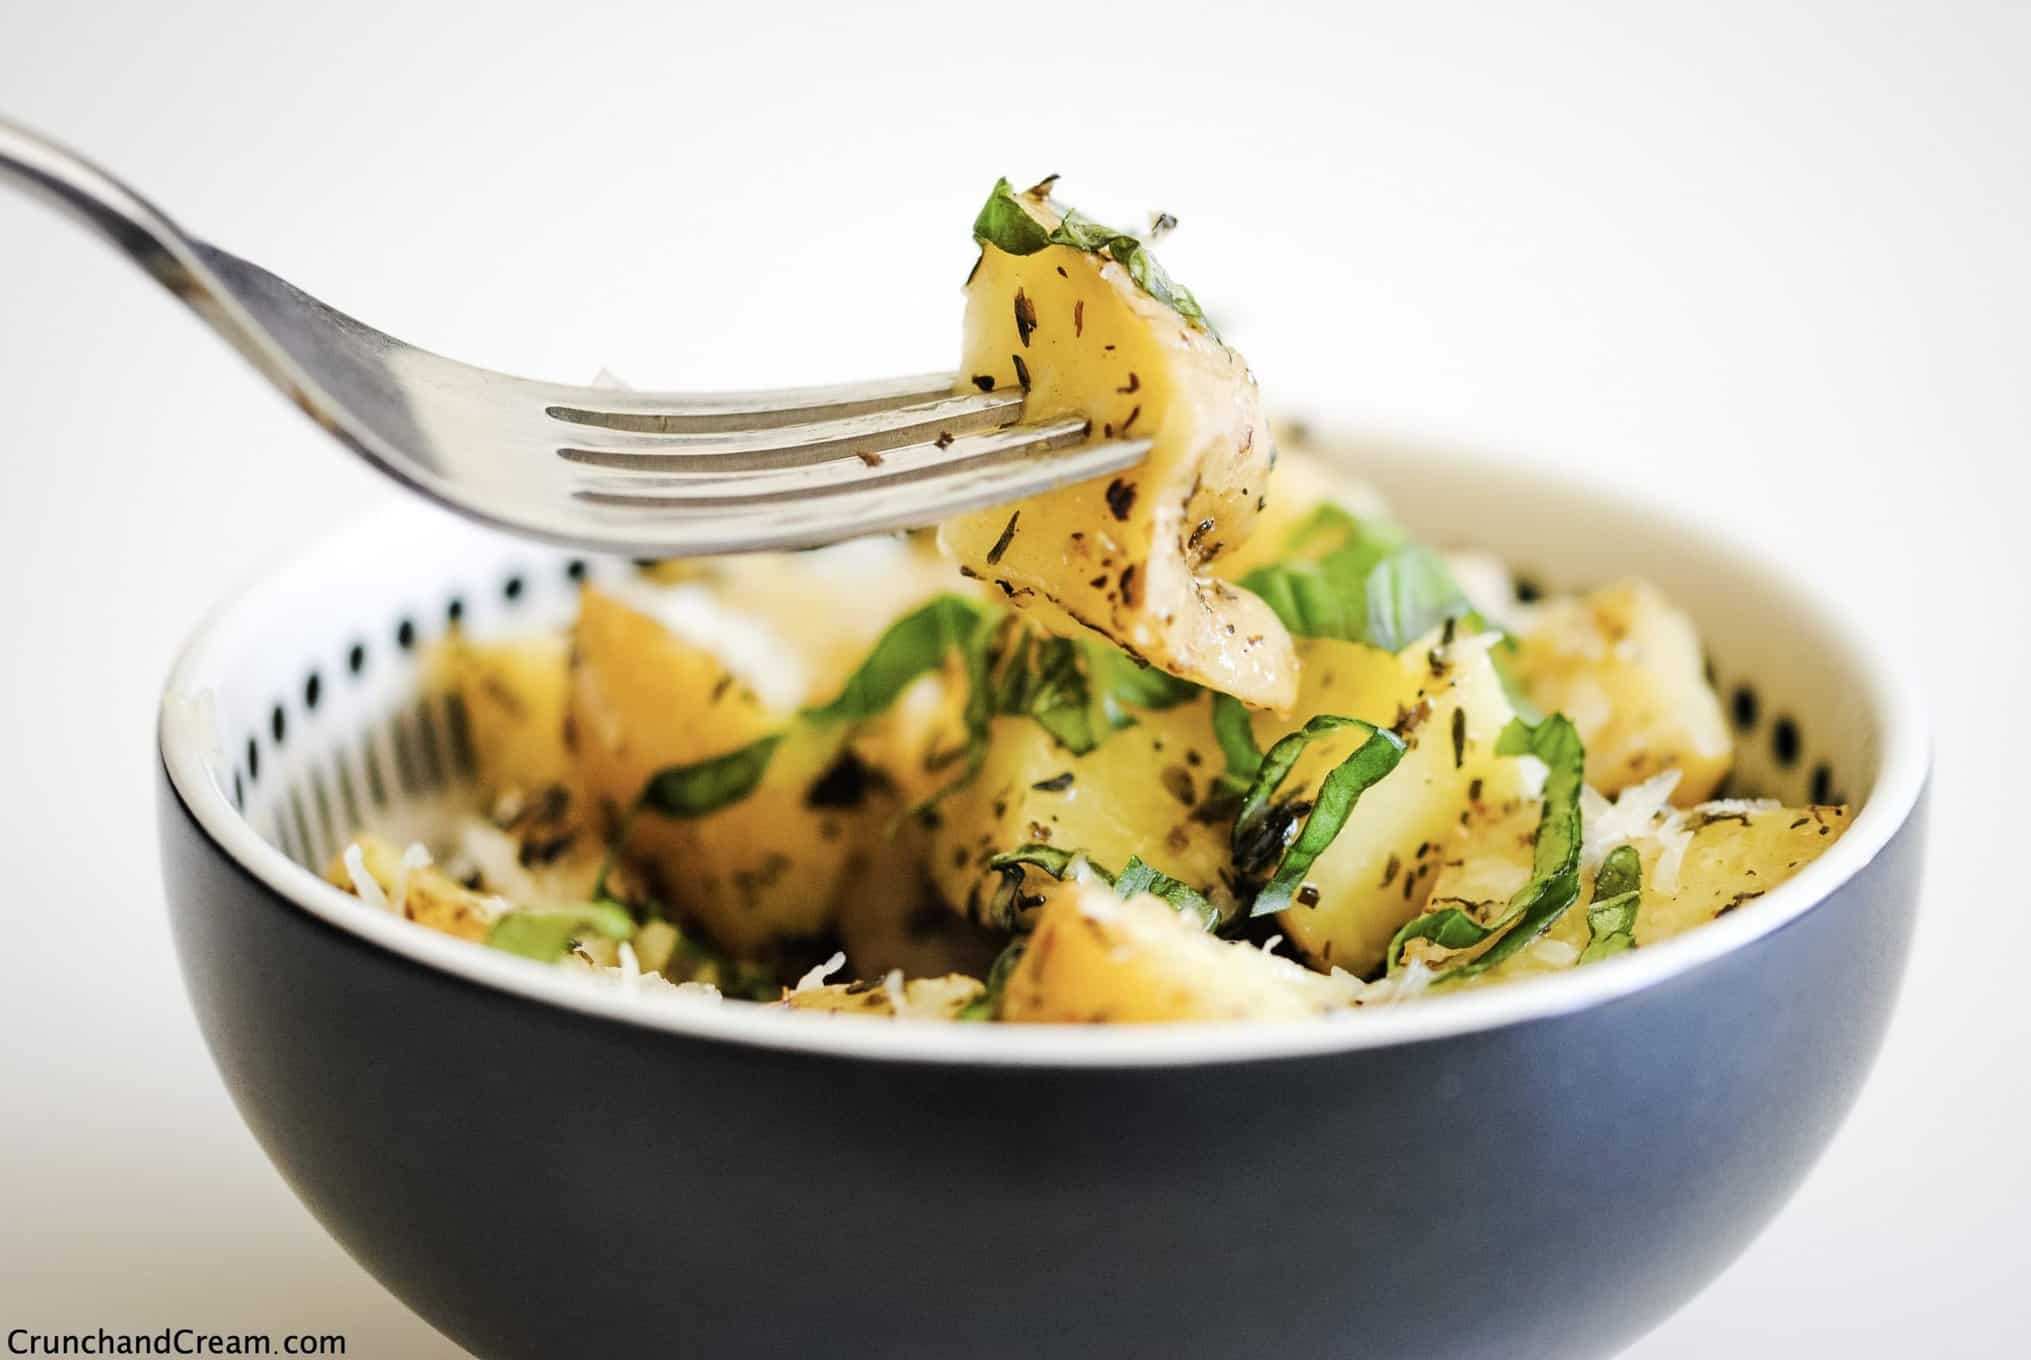 eye-level view of diced cooked potatoes in a bowl with grated cheese and chopped herbs. A fork is holding one piece of potato.